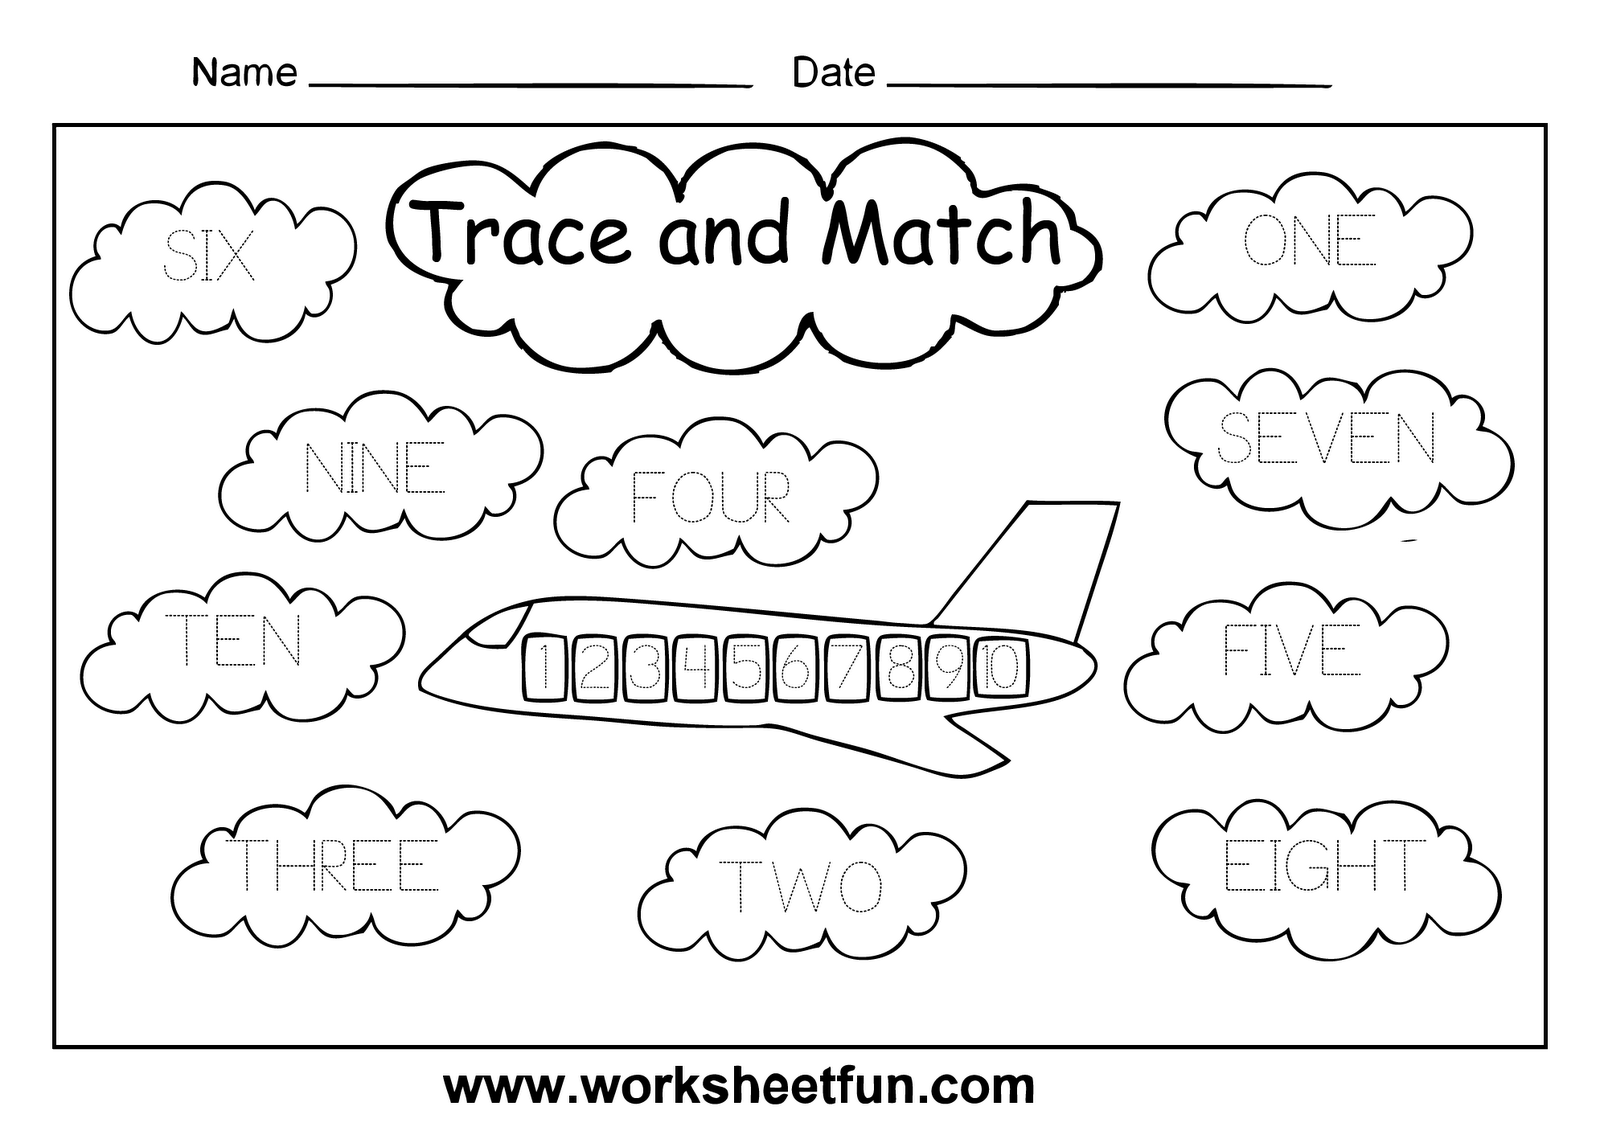 Weirdmailus  Wonderful Worksheet Numbers    Reocurent With Handsome Basic Economics Worksheets Besides Educational Worksheet Furthermore Preschool Preposition Worksheets With Amazing Worksheet On Speed Also Free Printable Daily Oral Language Worksheets In Addition Student Worksheets Free Printable And Money Adding Worksheets As Well As Seed To Plant Worksheet Additionally Synonyms Practice Worksheets From Reocurentcom With Weirdmailus  Handsome Worksheet Numbers    Reocurent With Amazing Basic Economics Worksheets Besides Educational Worksheet Furthermore Preschool Preposition Worksheets And Wonderful Worksheet On Speed Also Free Printable Daily Oral Language Worksheets In Addition Student Worksheets Free Printable From Reocurentcom